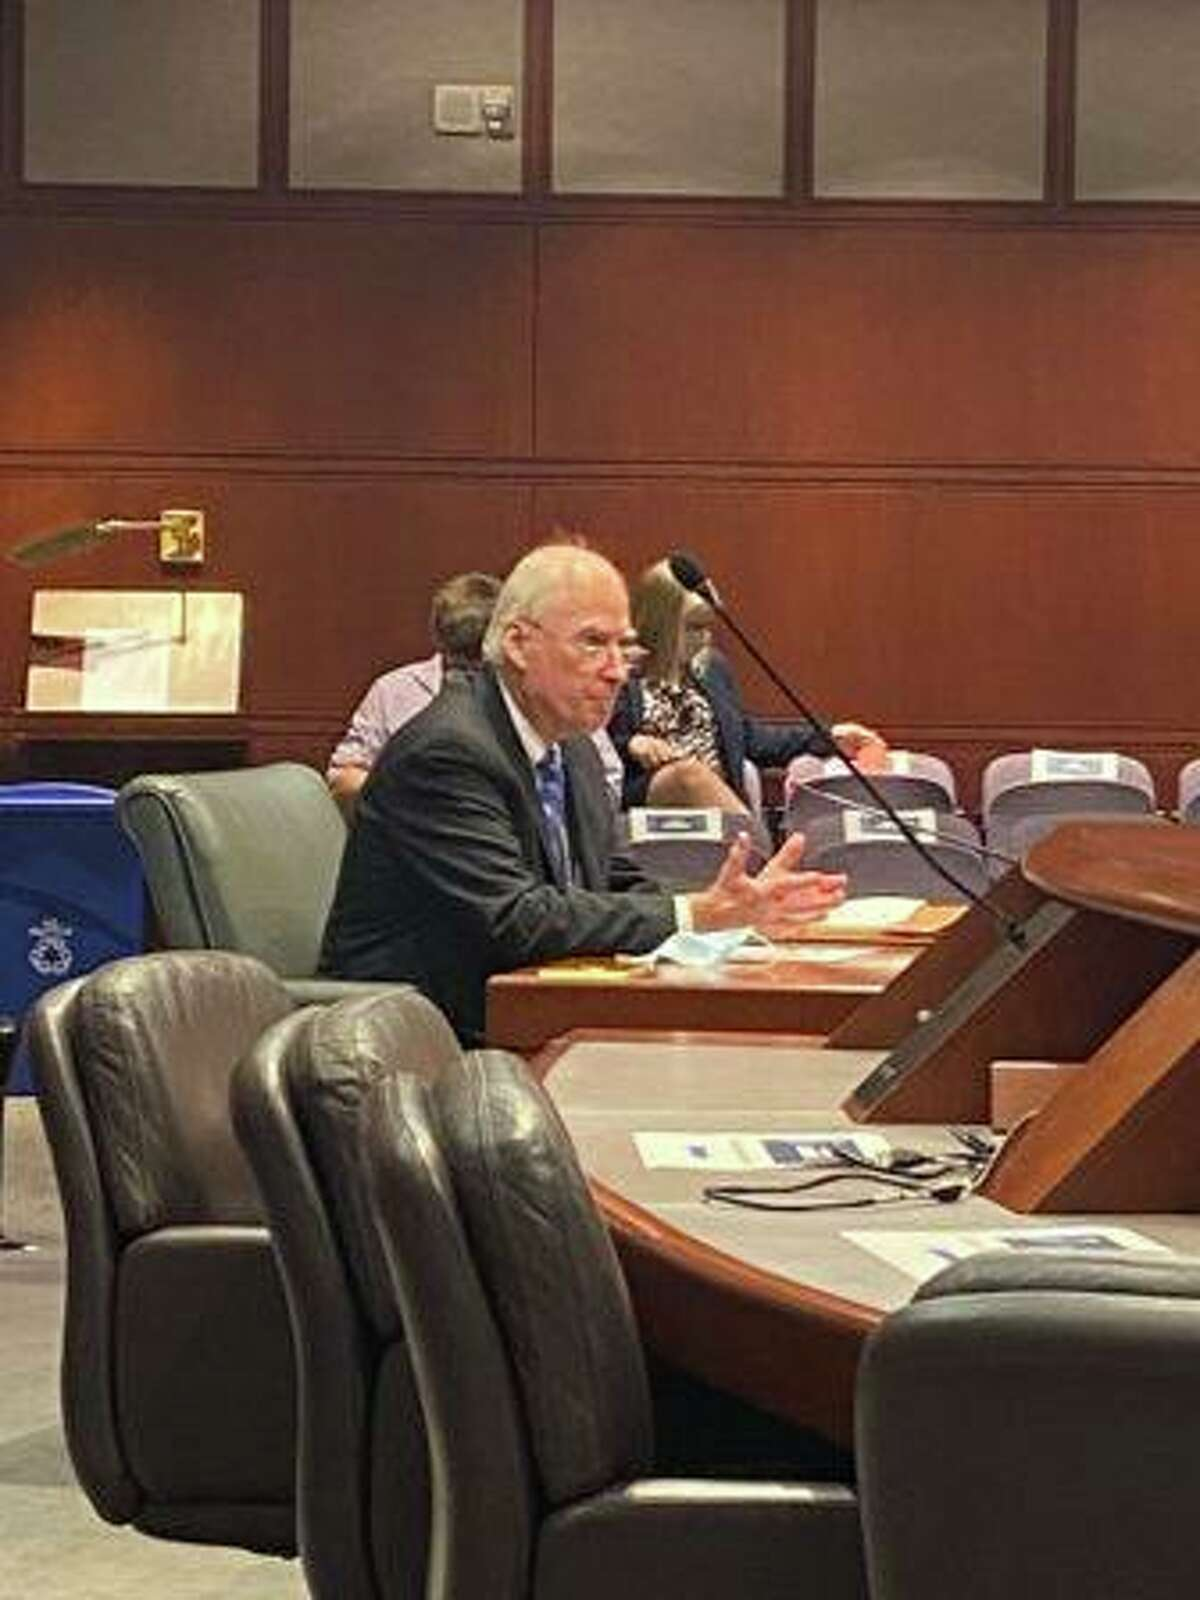 Robert Devlin Jr., a former state judge and federal prosecutor, was appointed by the Criminal Justice Commission to the position of inspector general after a full day of interviews on Monday.